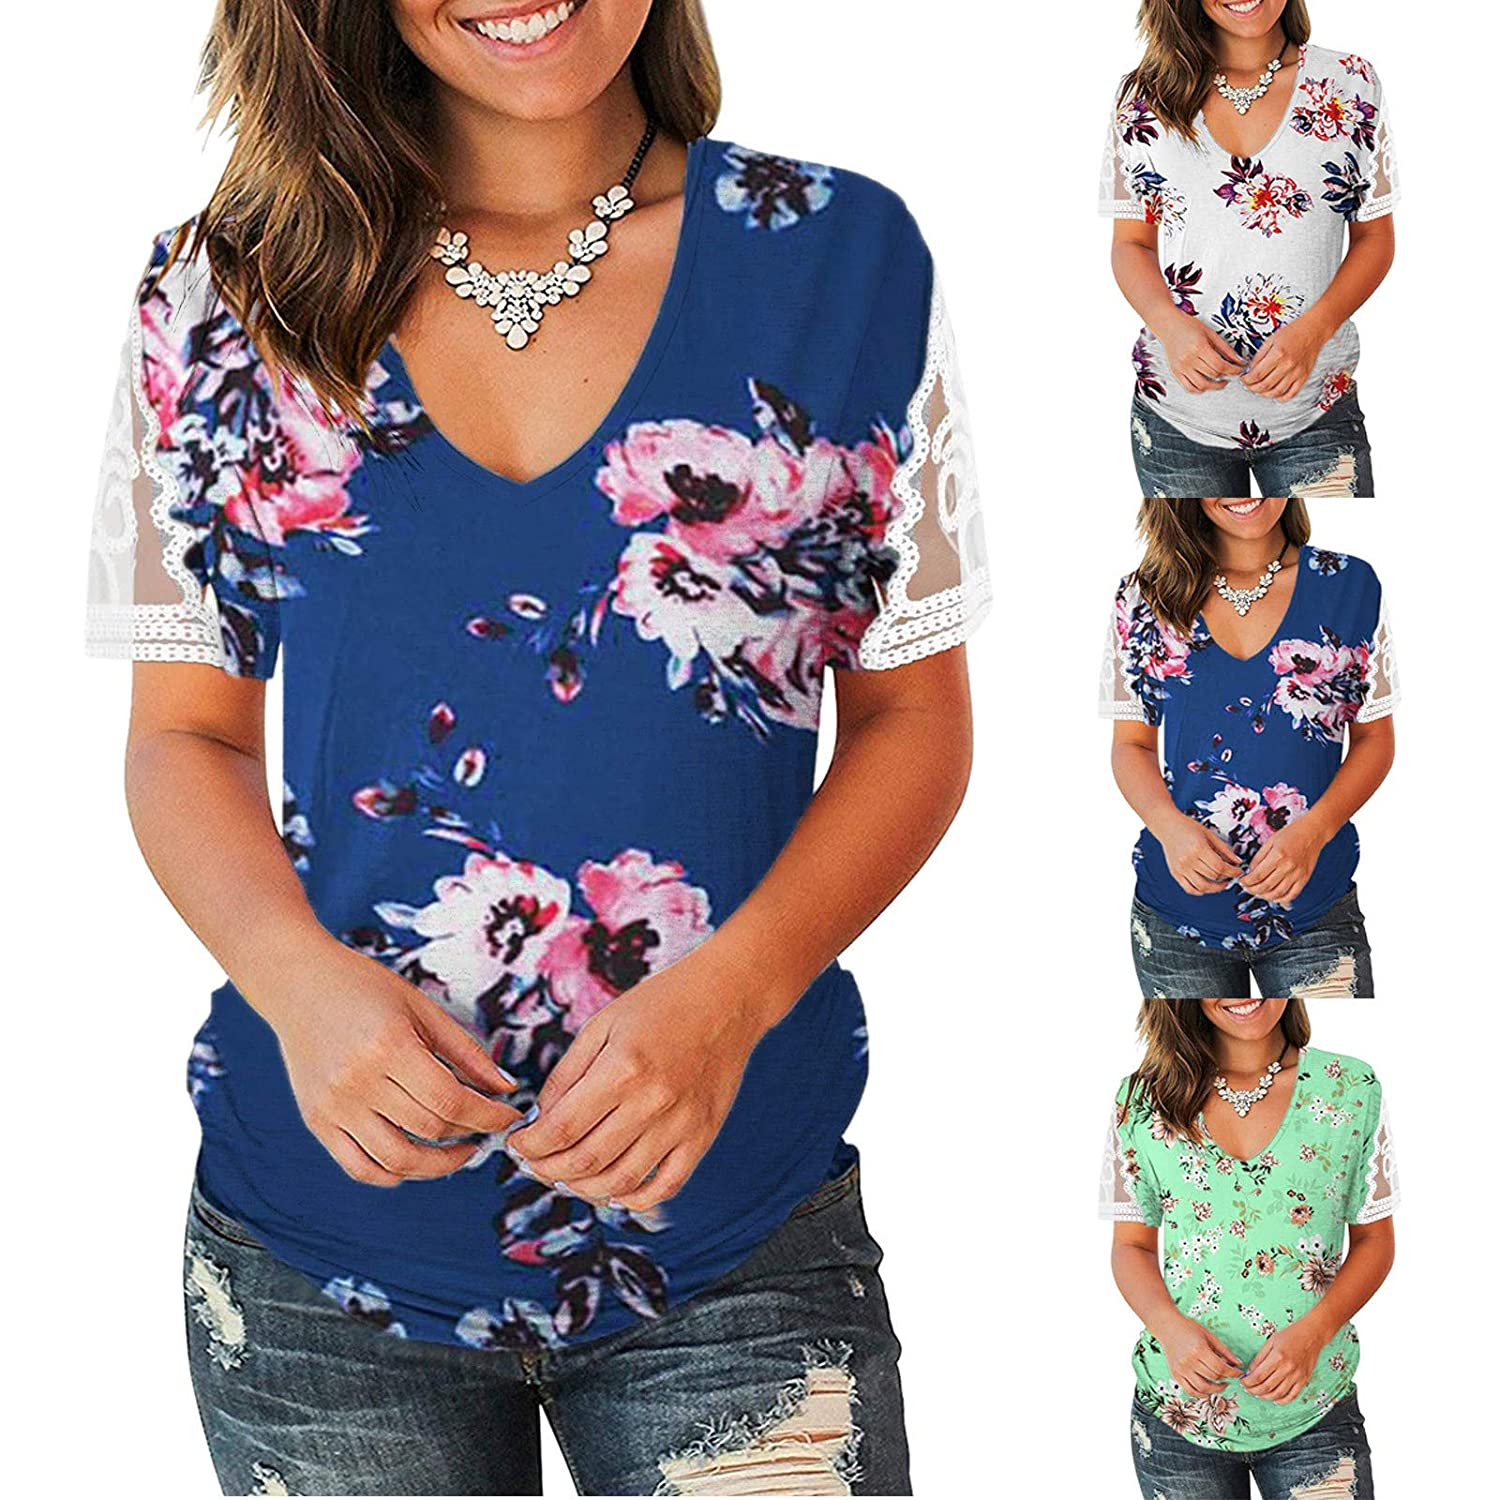 Womens Floral Tops Lace Short Sleeve V Neck Tee T Shirt Printed Casual Loose Basic Shirts Tops Blouses